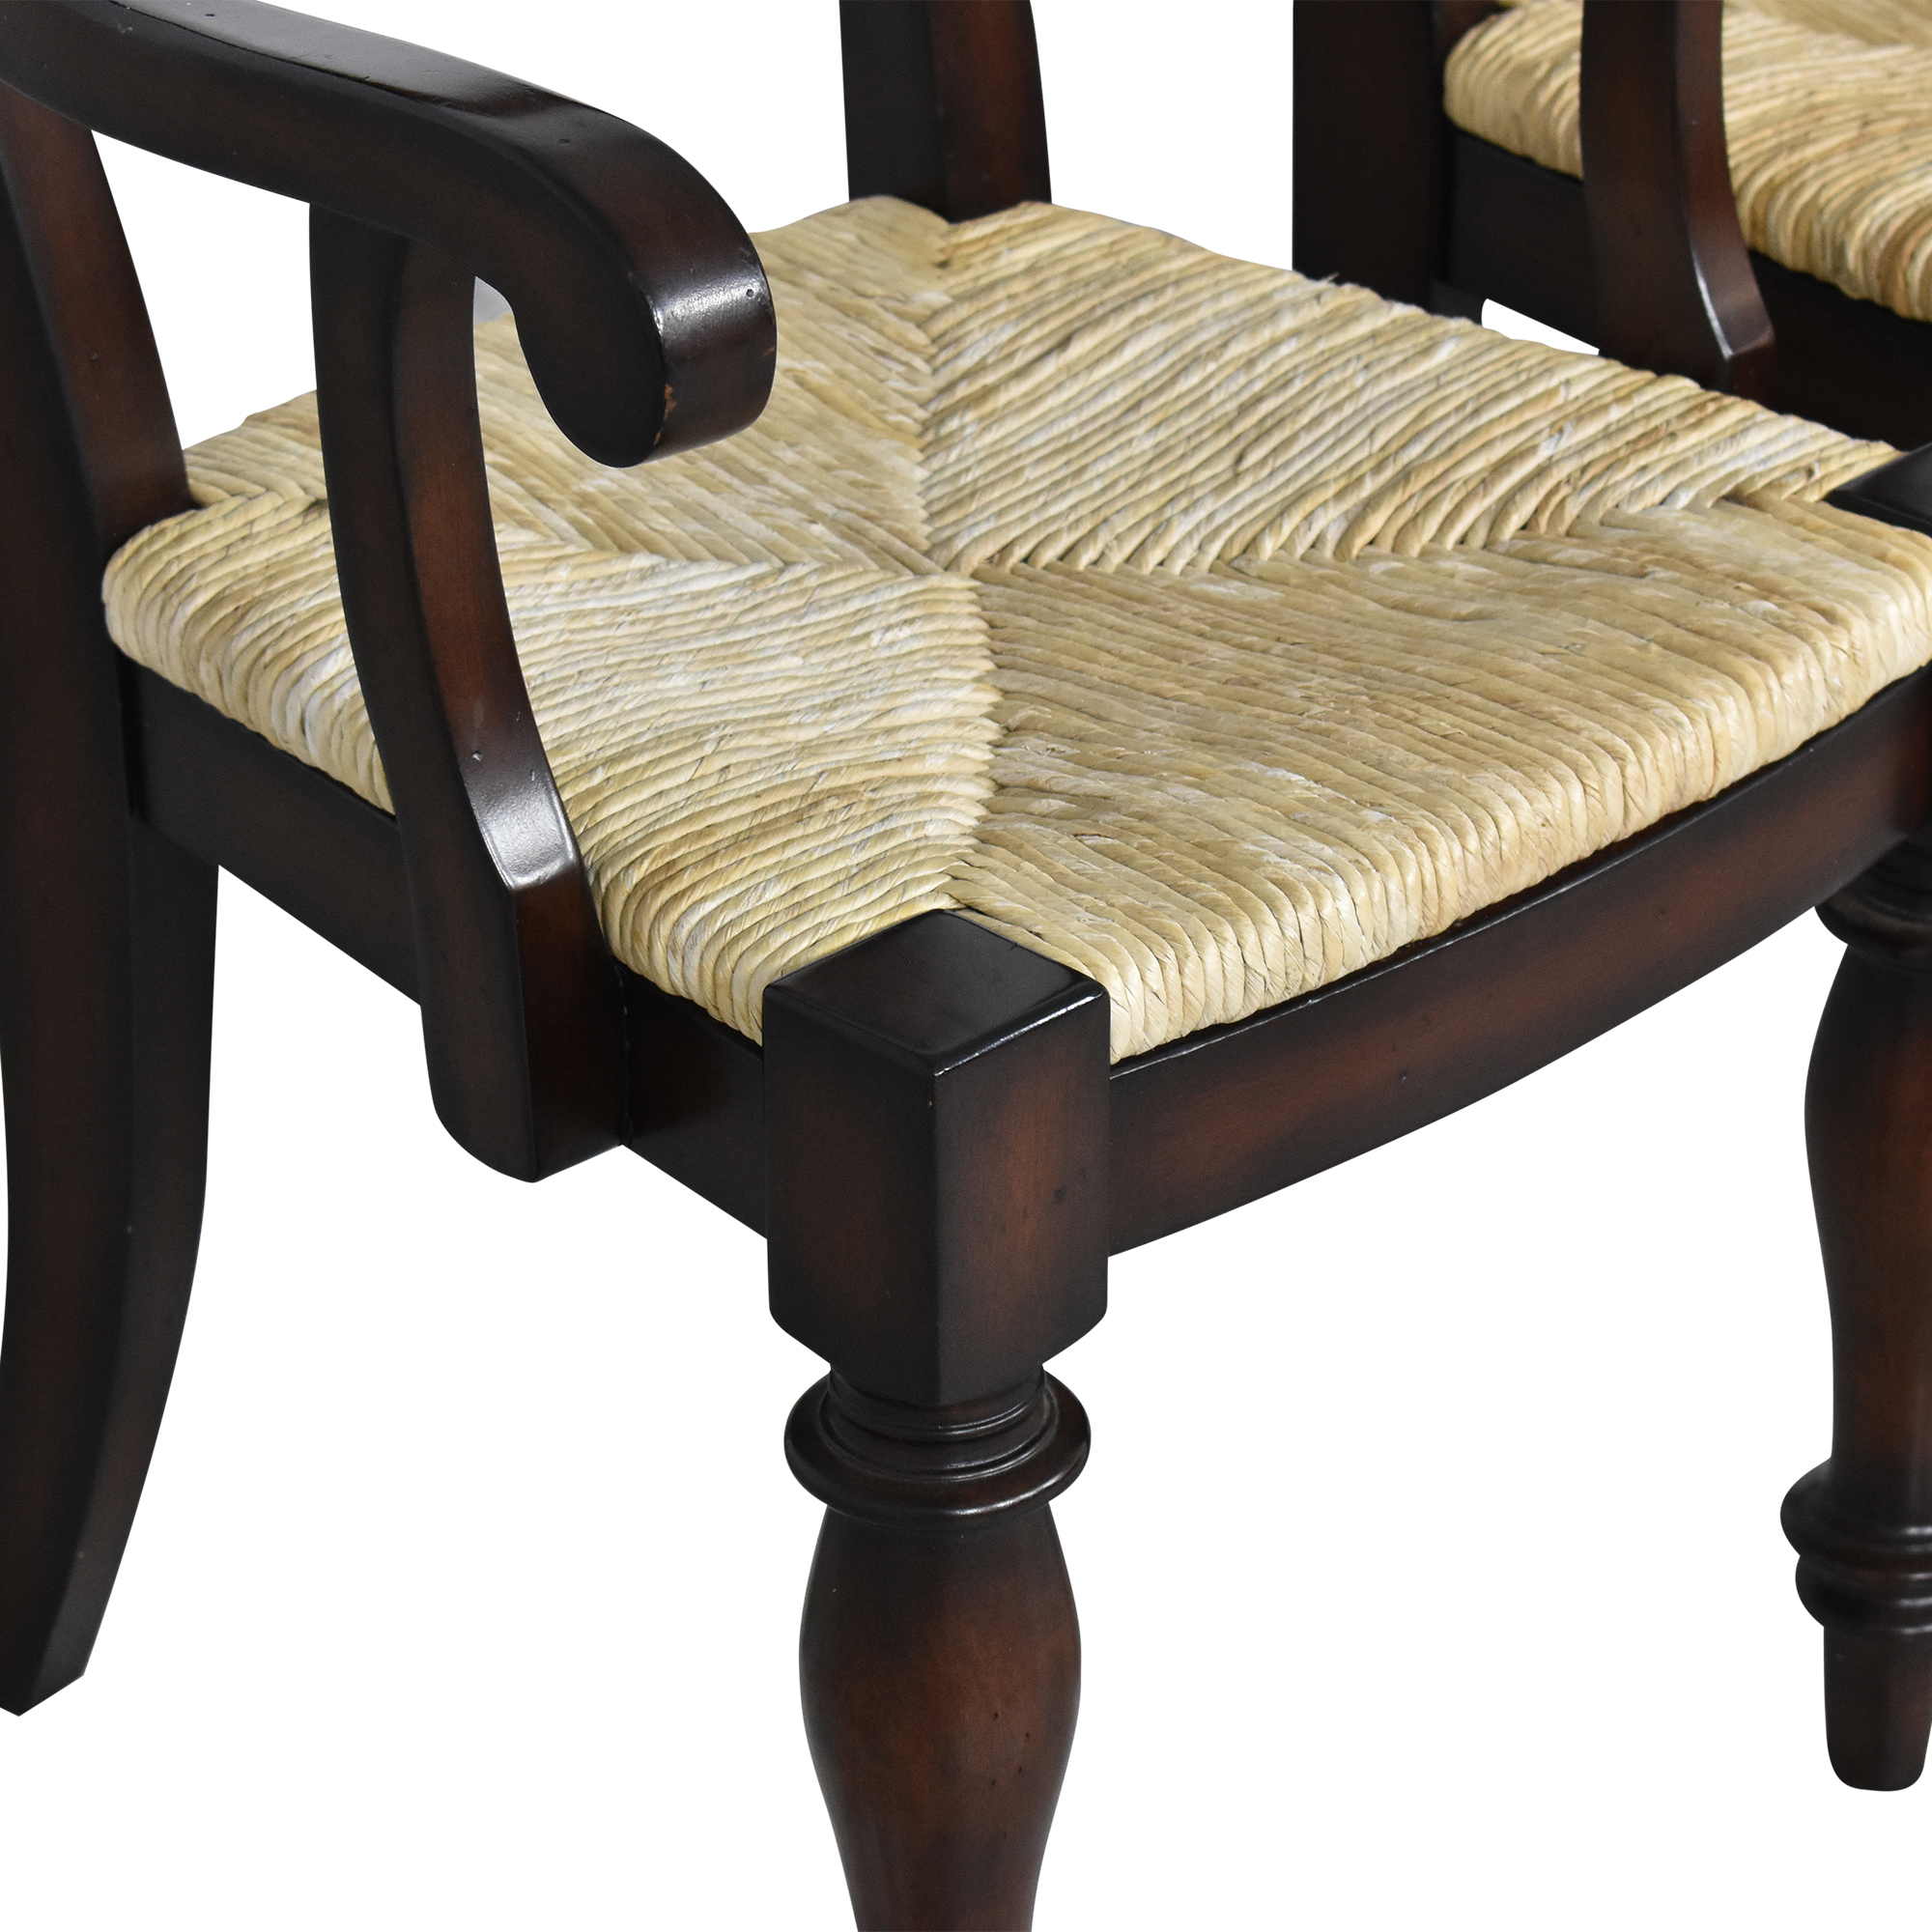 Pottery Barn Pottery Barn Montego Dining Chairs for sale